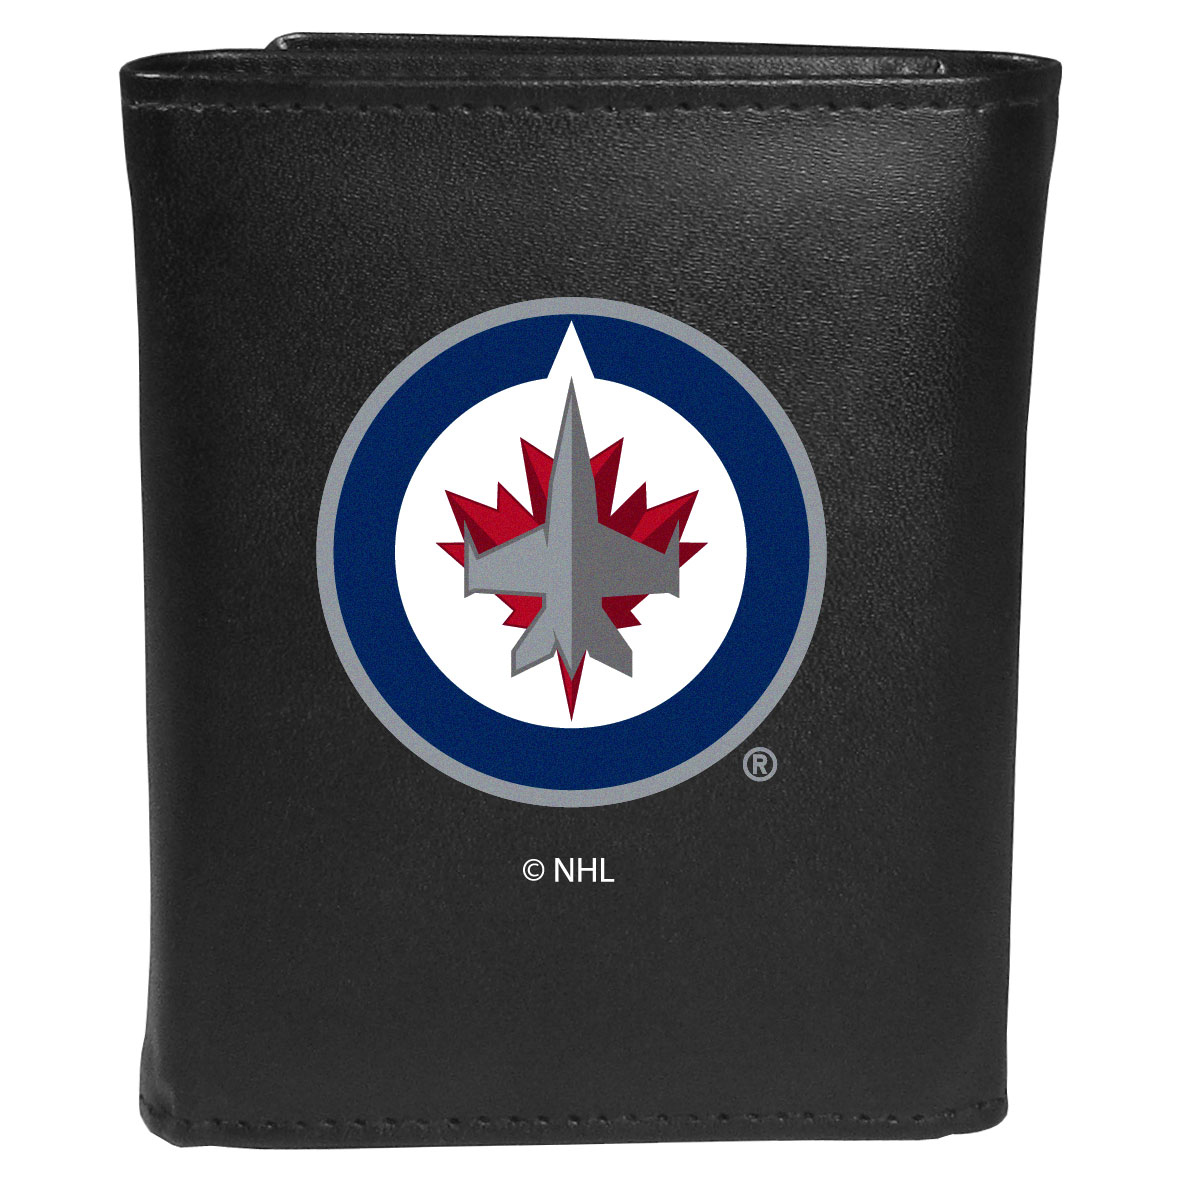 Winnipeg Jets™ Leather Tri-fold Wallet, Large Logo - Our classic fine leather tri-fold wallet is meticulously crafted with genuine leather that will age beautifully so you will have a quality wallet for years to come. This is fan apparel at its finest. The wallet is packed with organizational  features; lots of credit card slots, large billfold pocket, and a window ID slot. The front of the wallet features an extra large Winnipeg Jets™ printed logo.